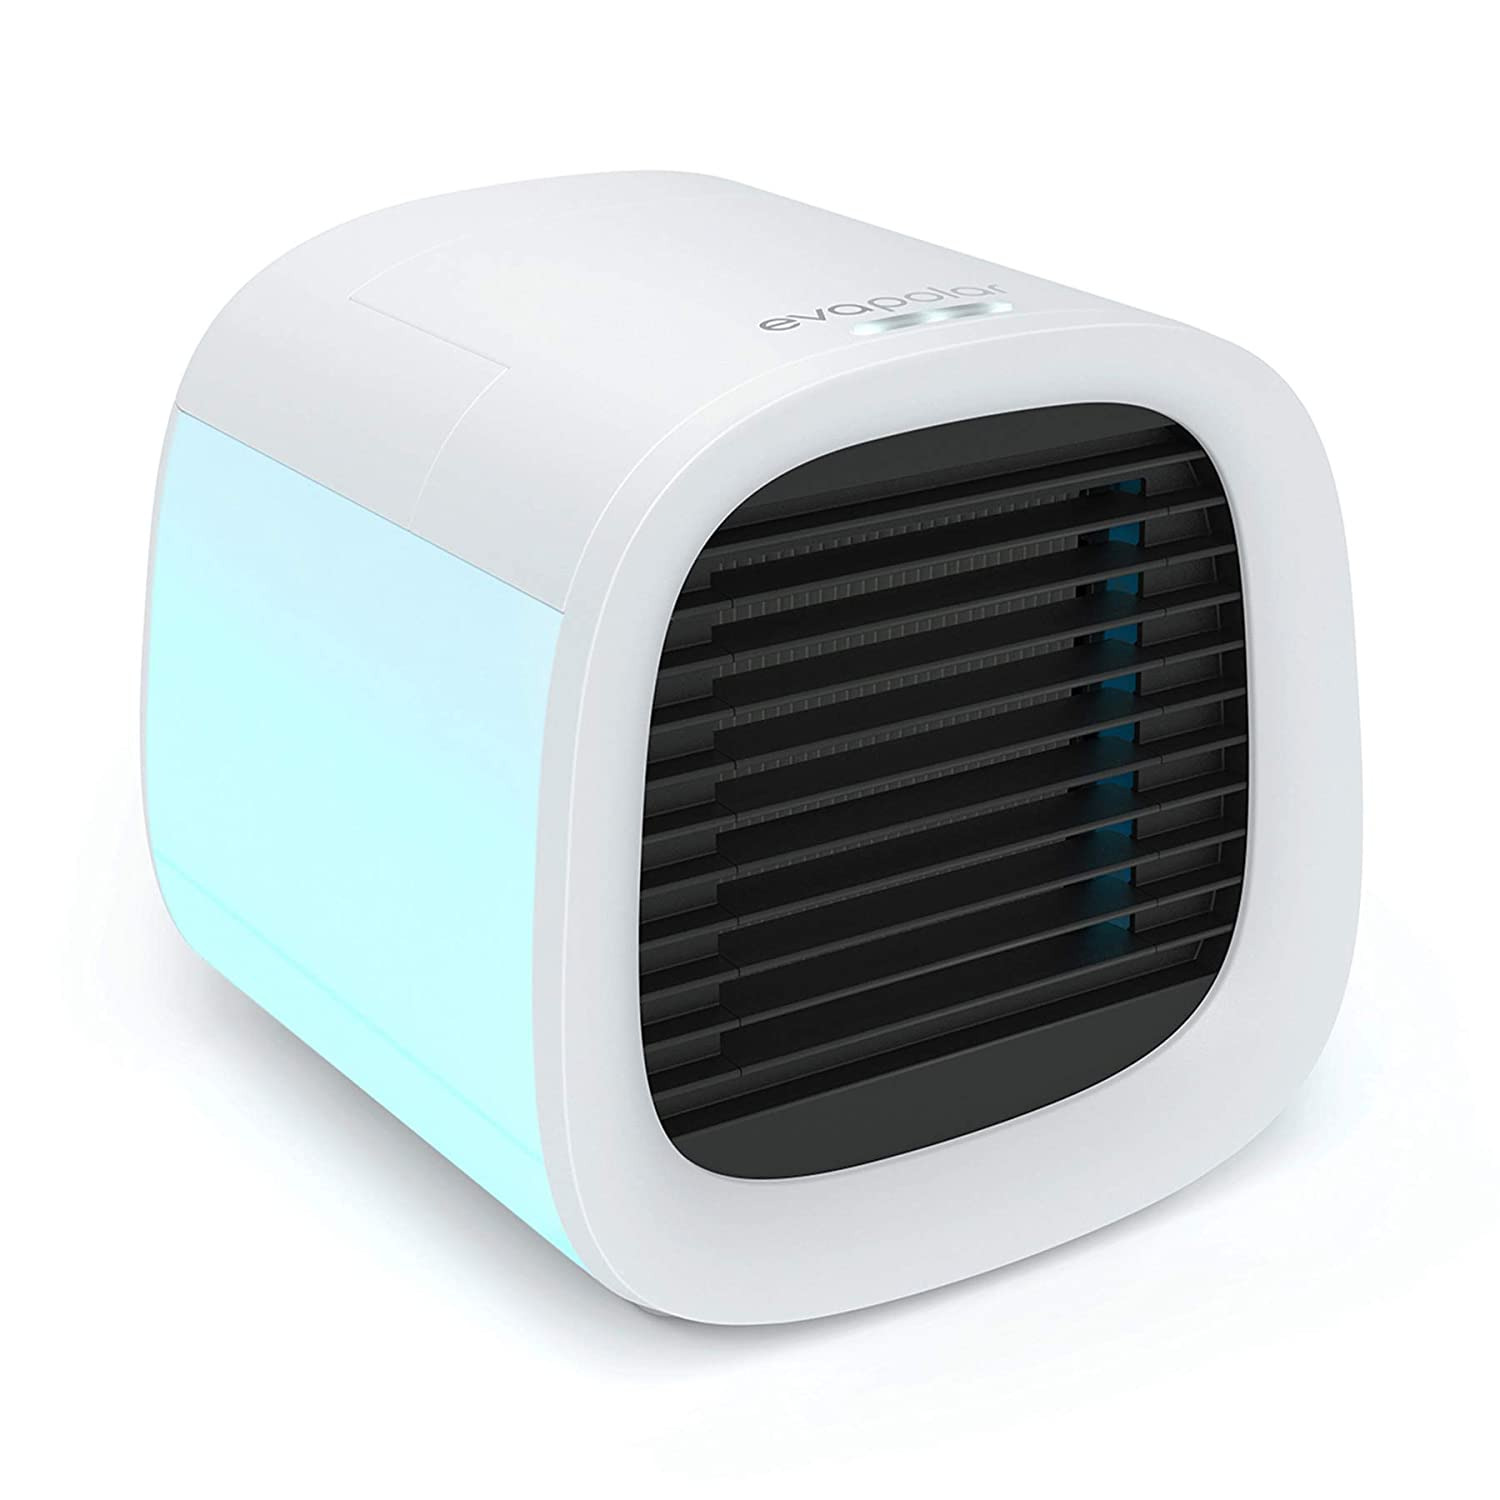 vapolar evaCHILL Personal Evaporative Air Cooler and Humidifier Portable Air Conditioner Fan, White